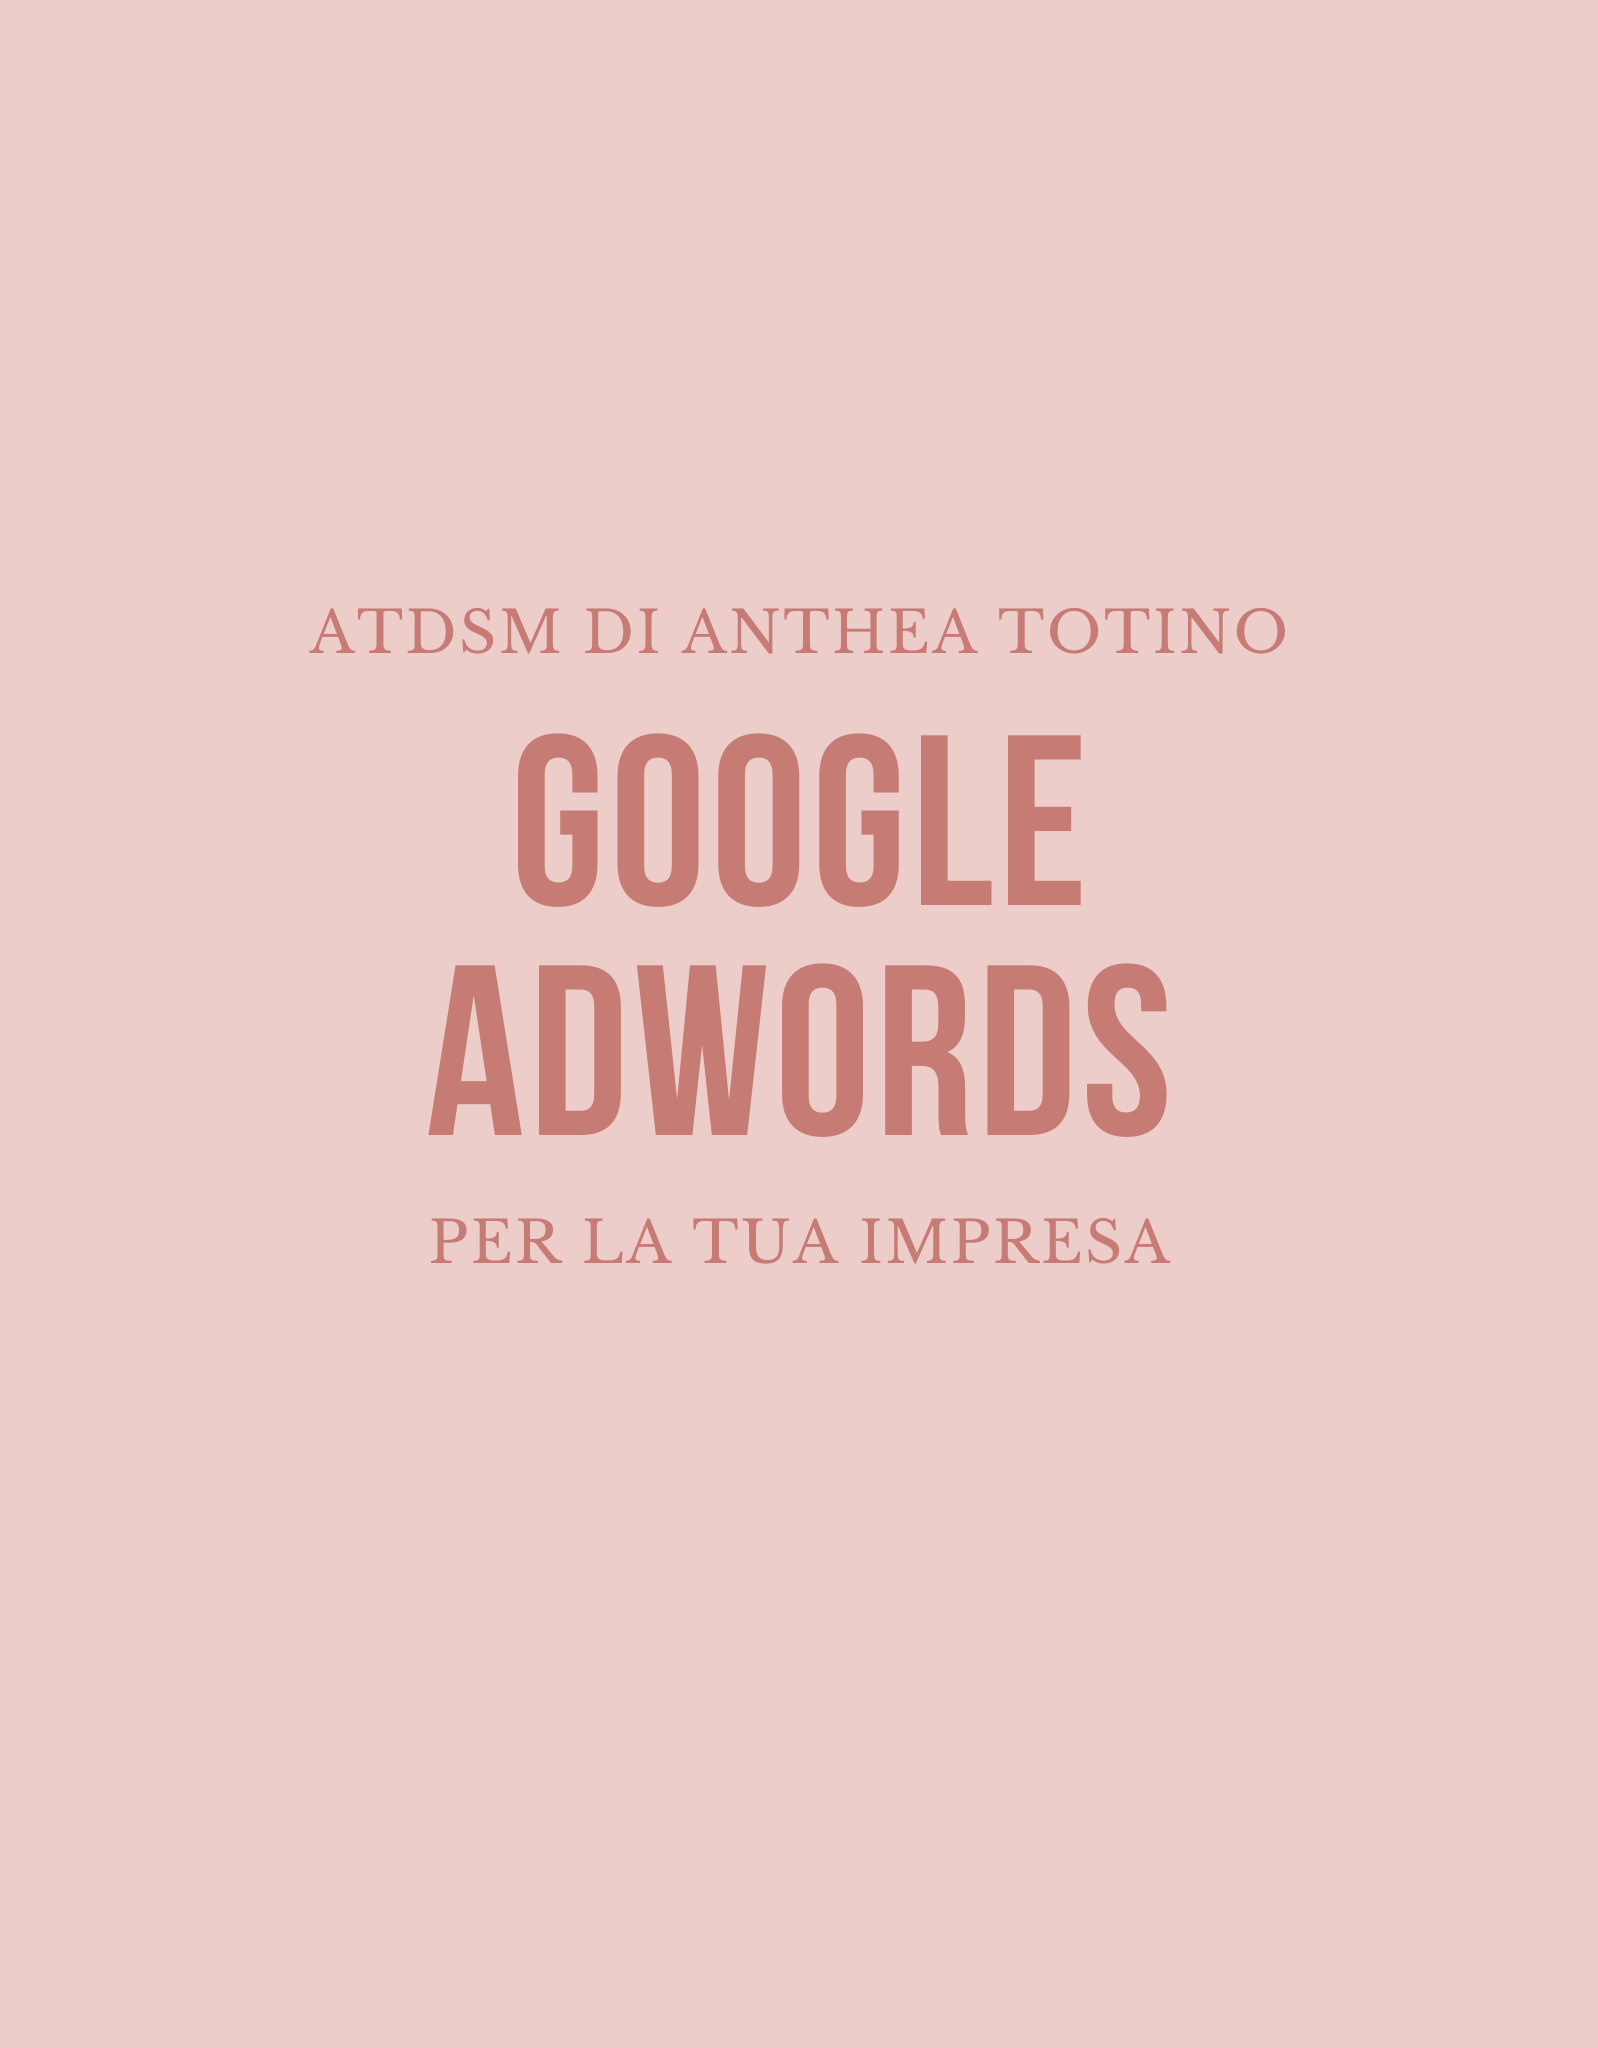 google-adwords-atdsm-di-anthea-totino